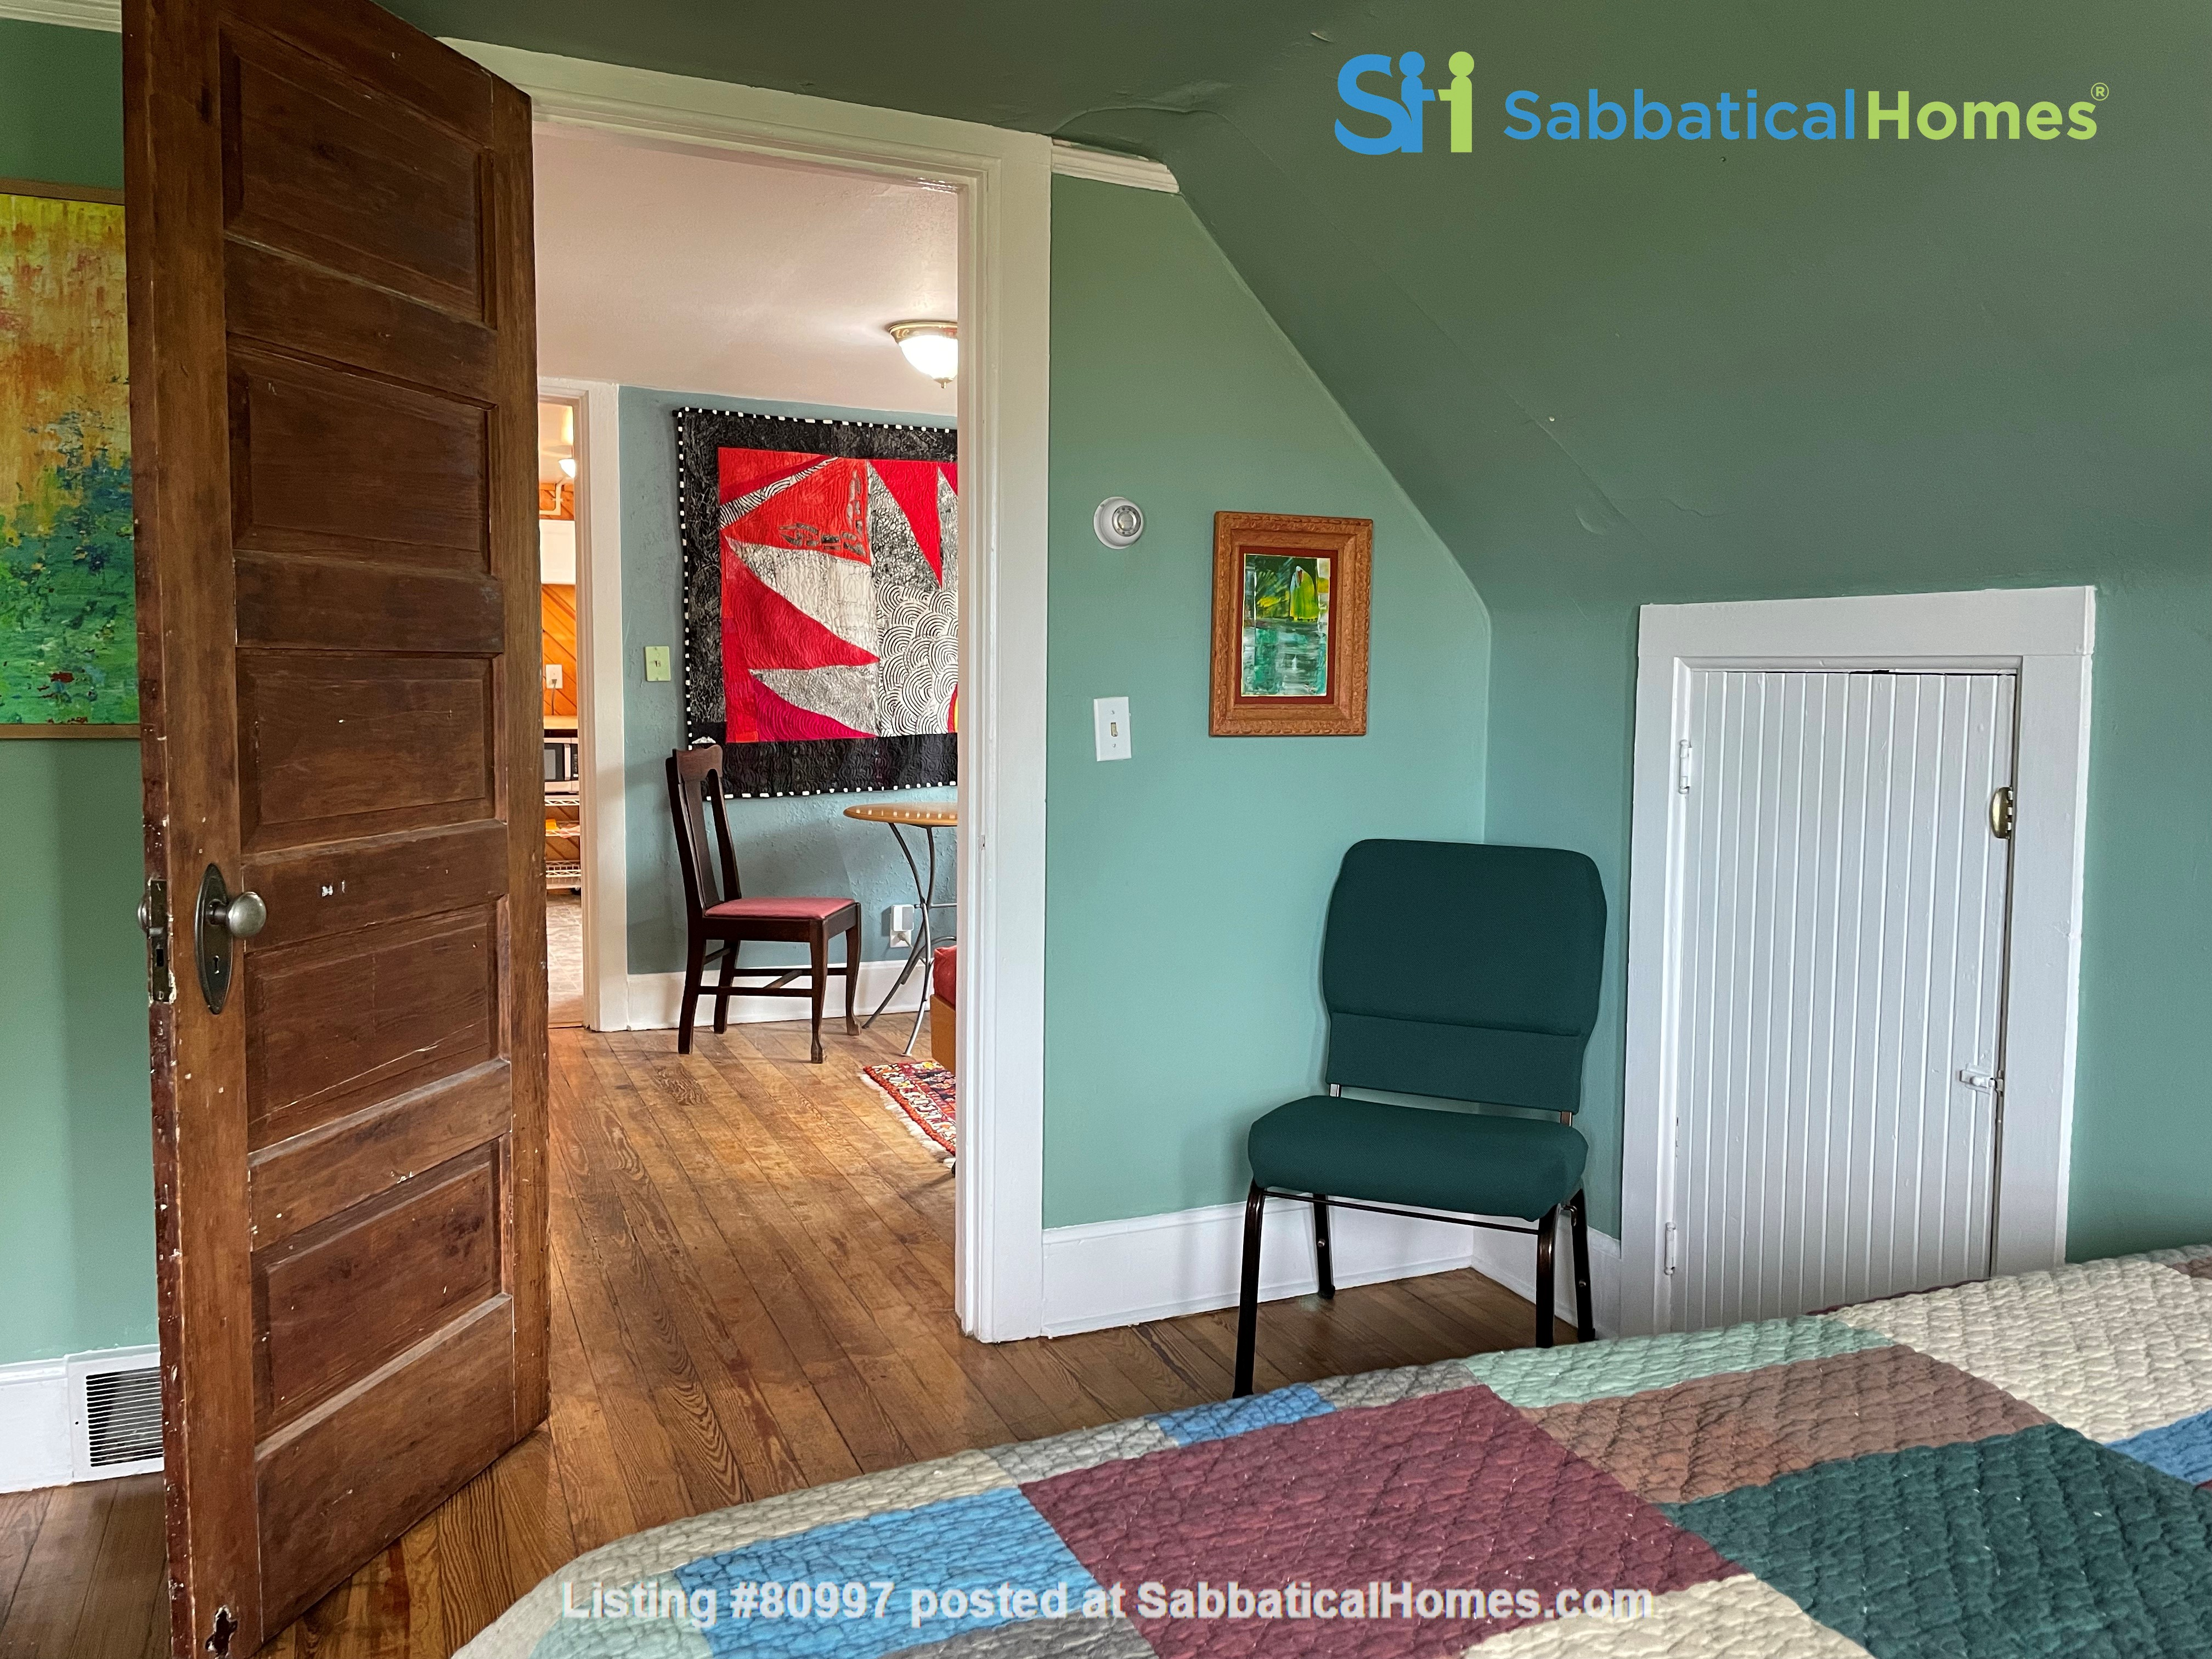 The Tree House. Third floor 1 bedroom, near east side walk-up Home Rental in Madison, Wisconsin, United States 2